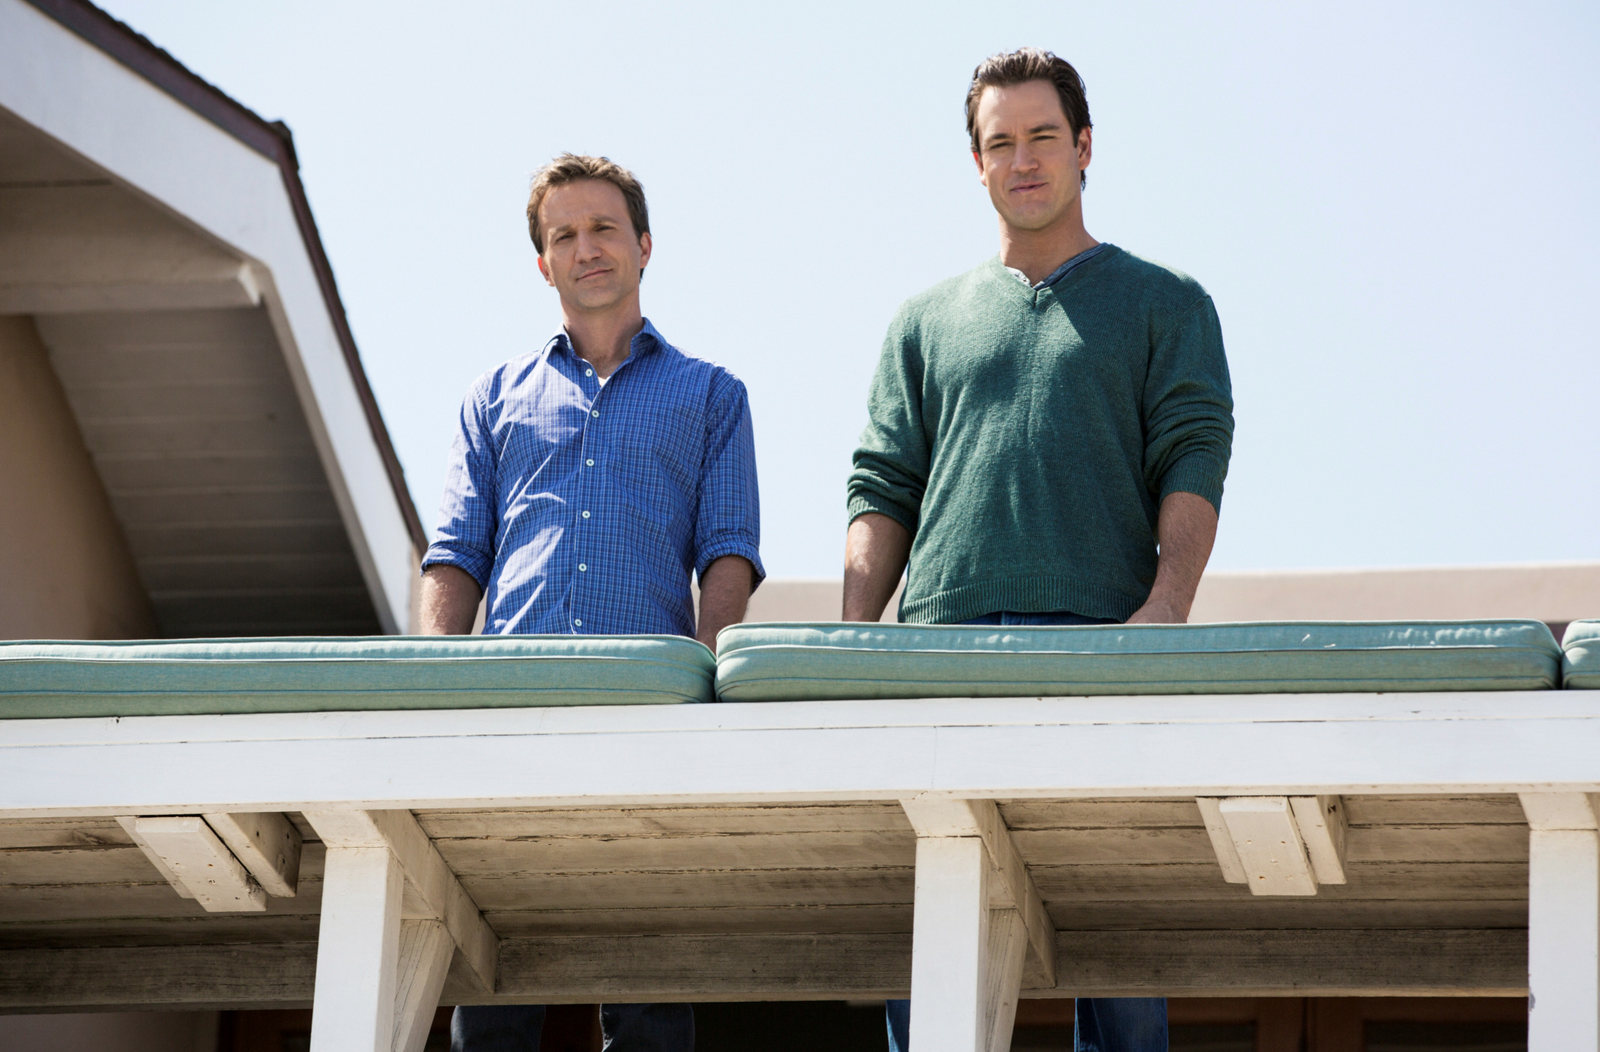 Franklin and Bash Season 3 Mark Paul Gosselaar and Breckin Meyer